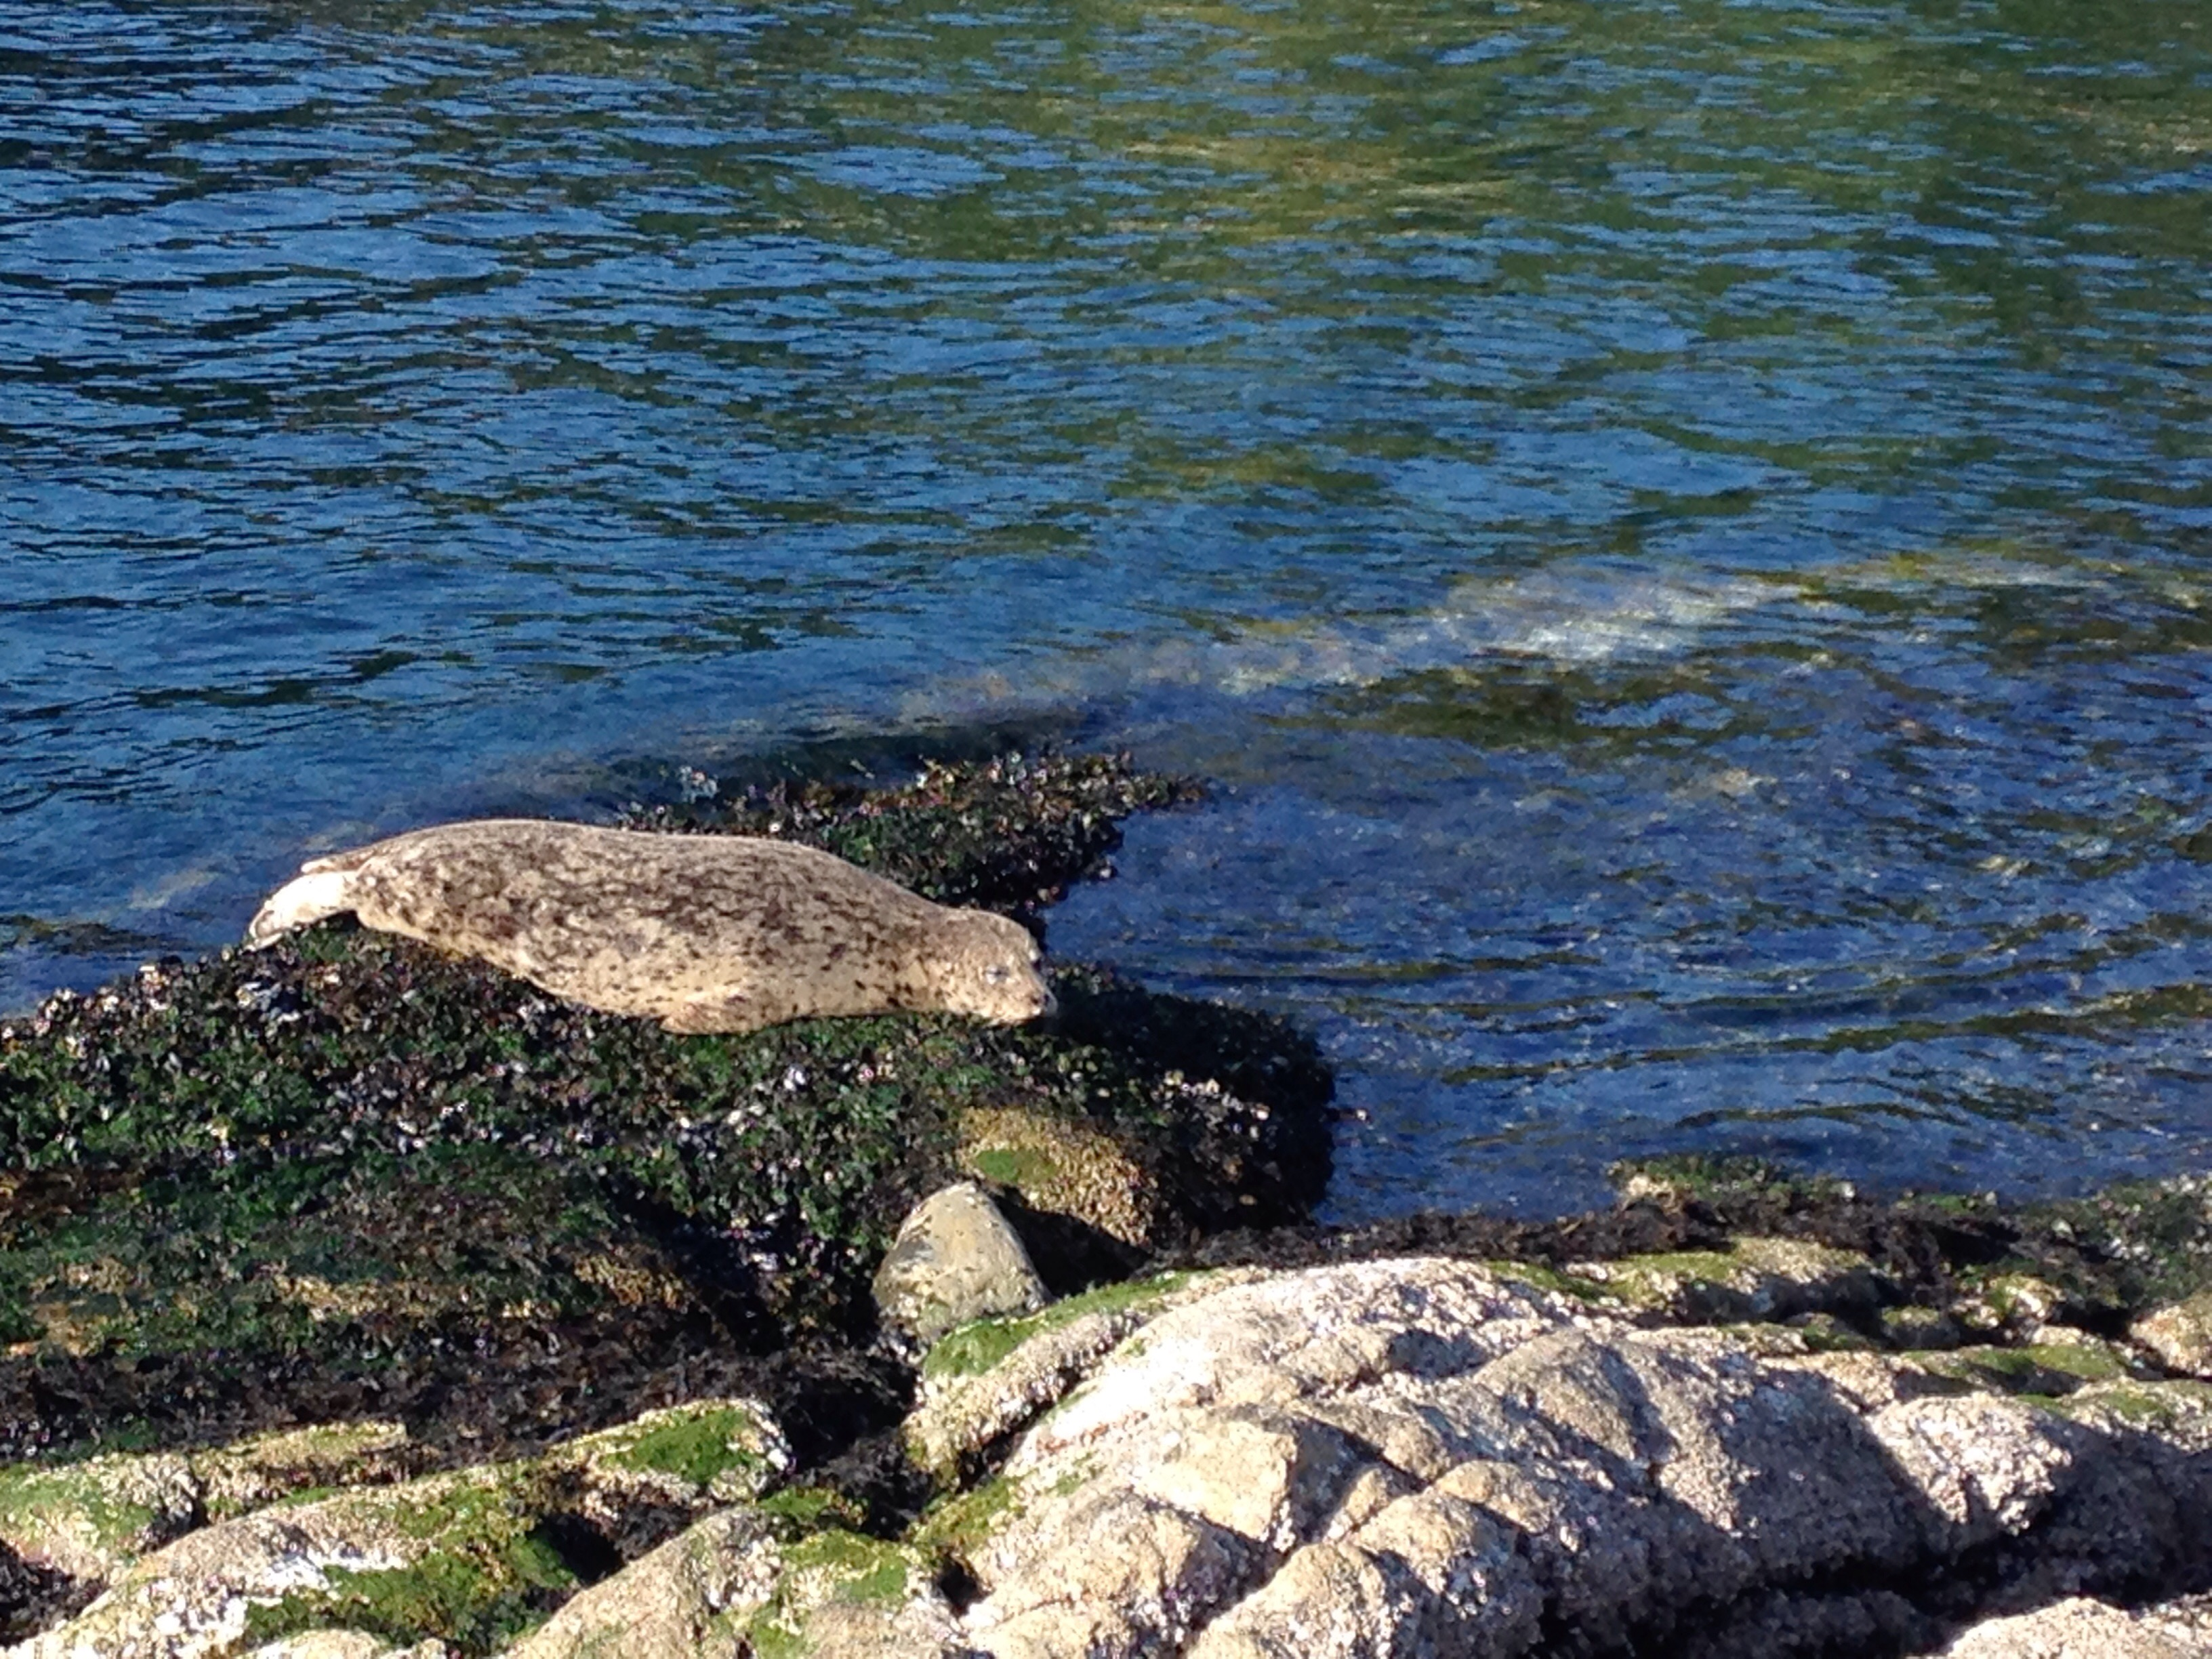 Great place to spot Marine Wildlife in the Lower Mainland